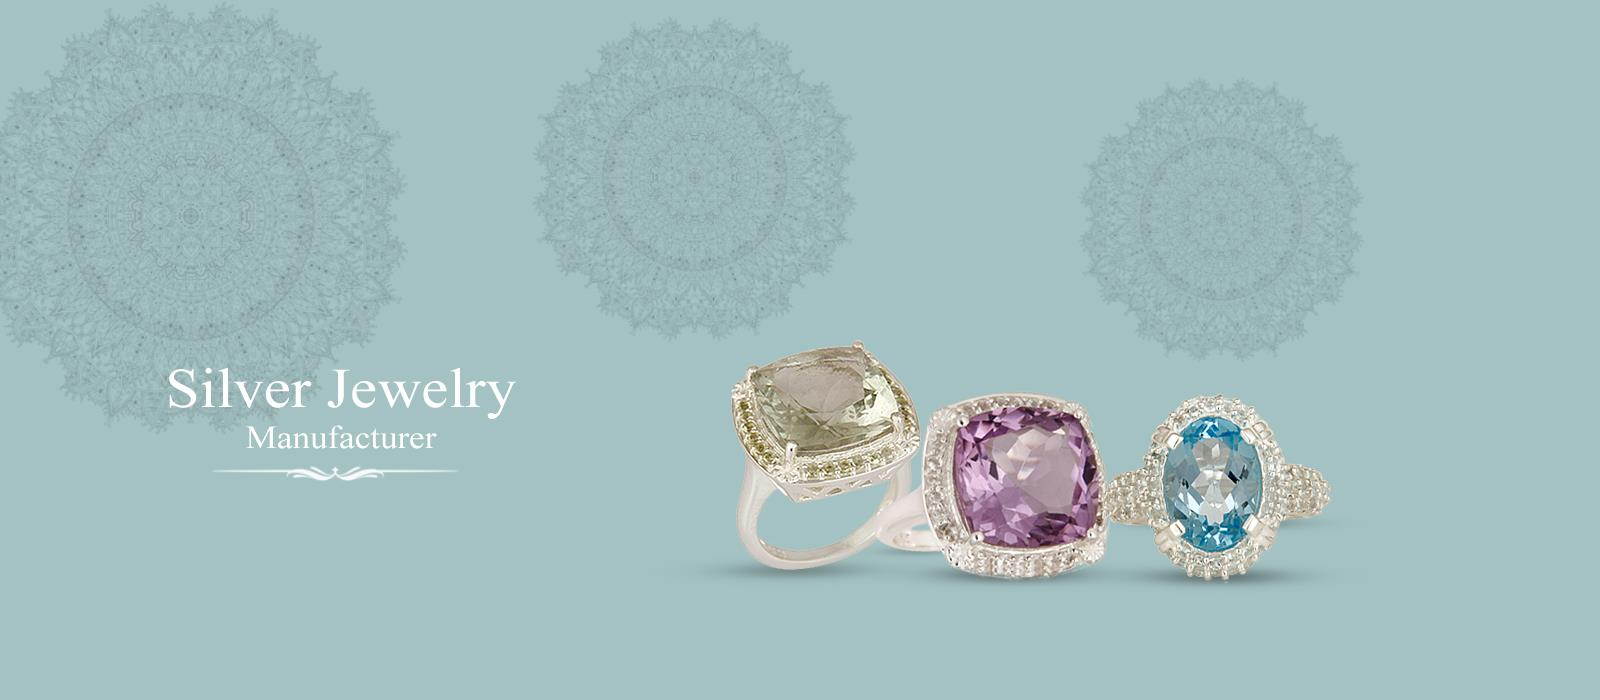 sterling silver jewelry suppliers, silver jewellery manufacturer Jaipur, Indian Silver Jewelry Manufacturers, Handmade Silver Jewelry Wholesaler India, Designer Silver Jewelry Manufacturers India